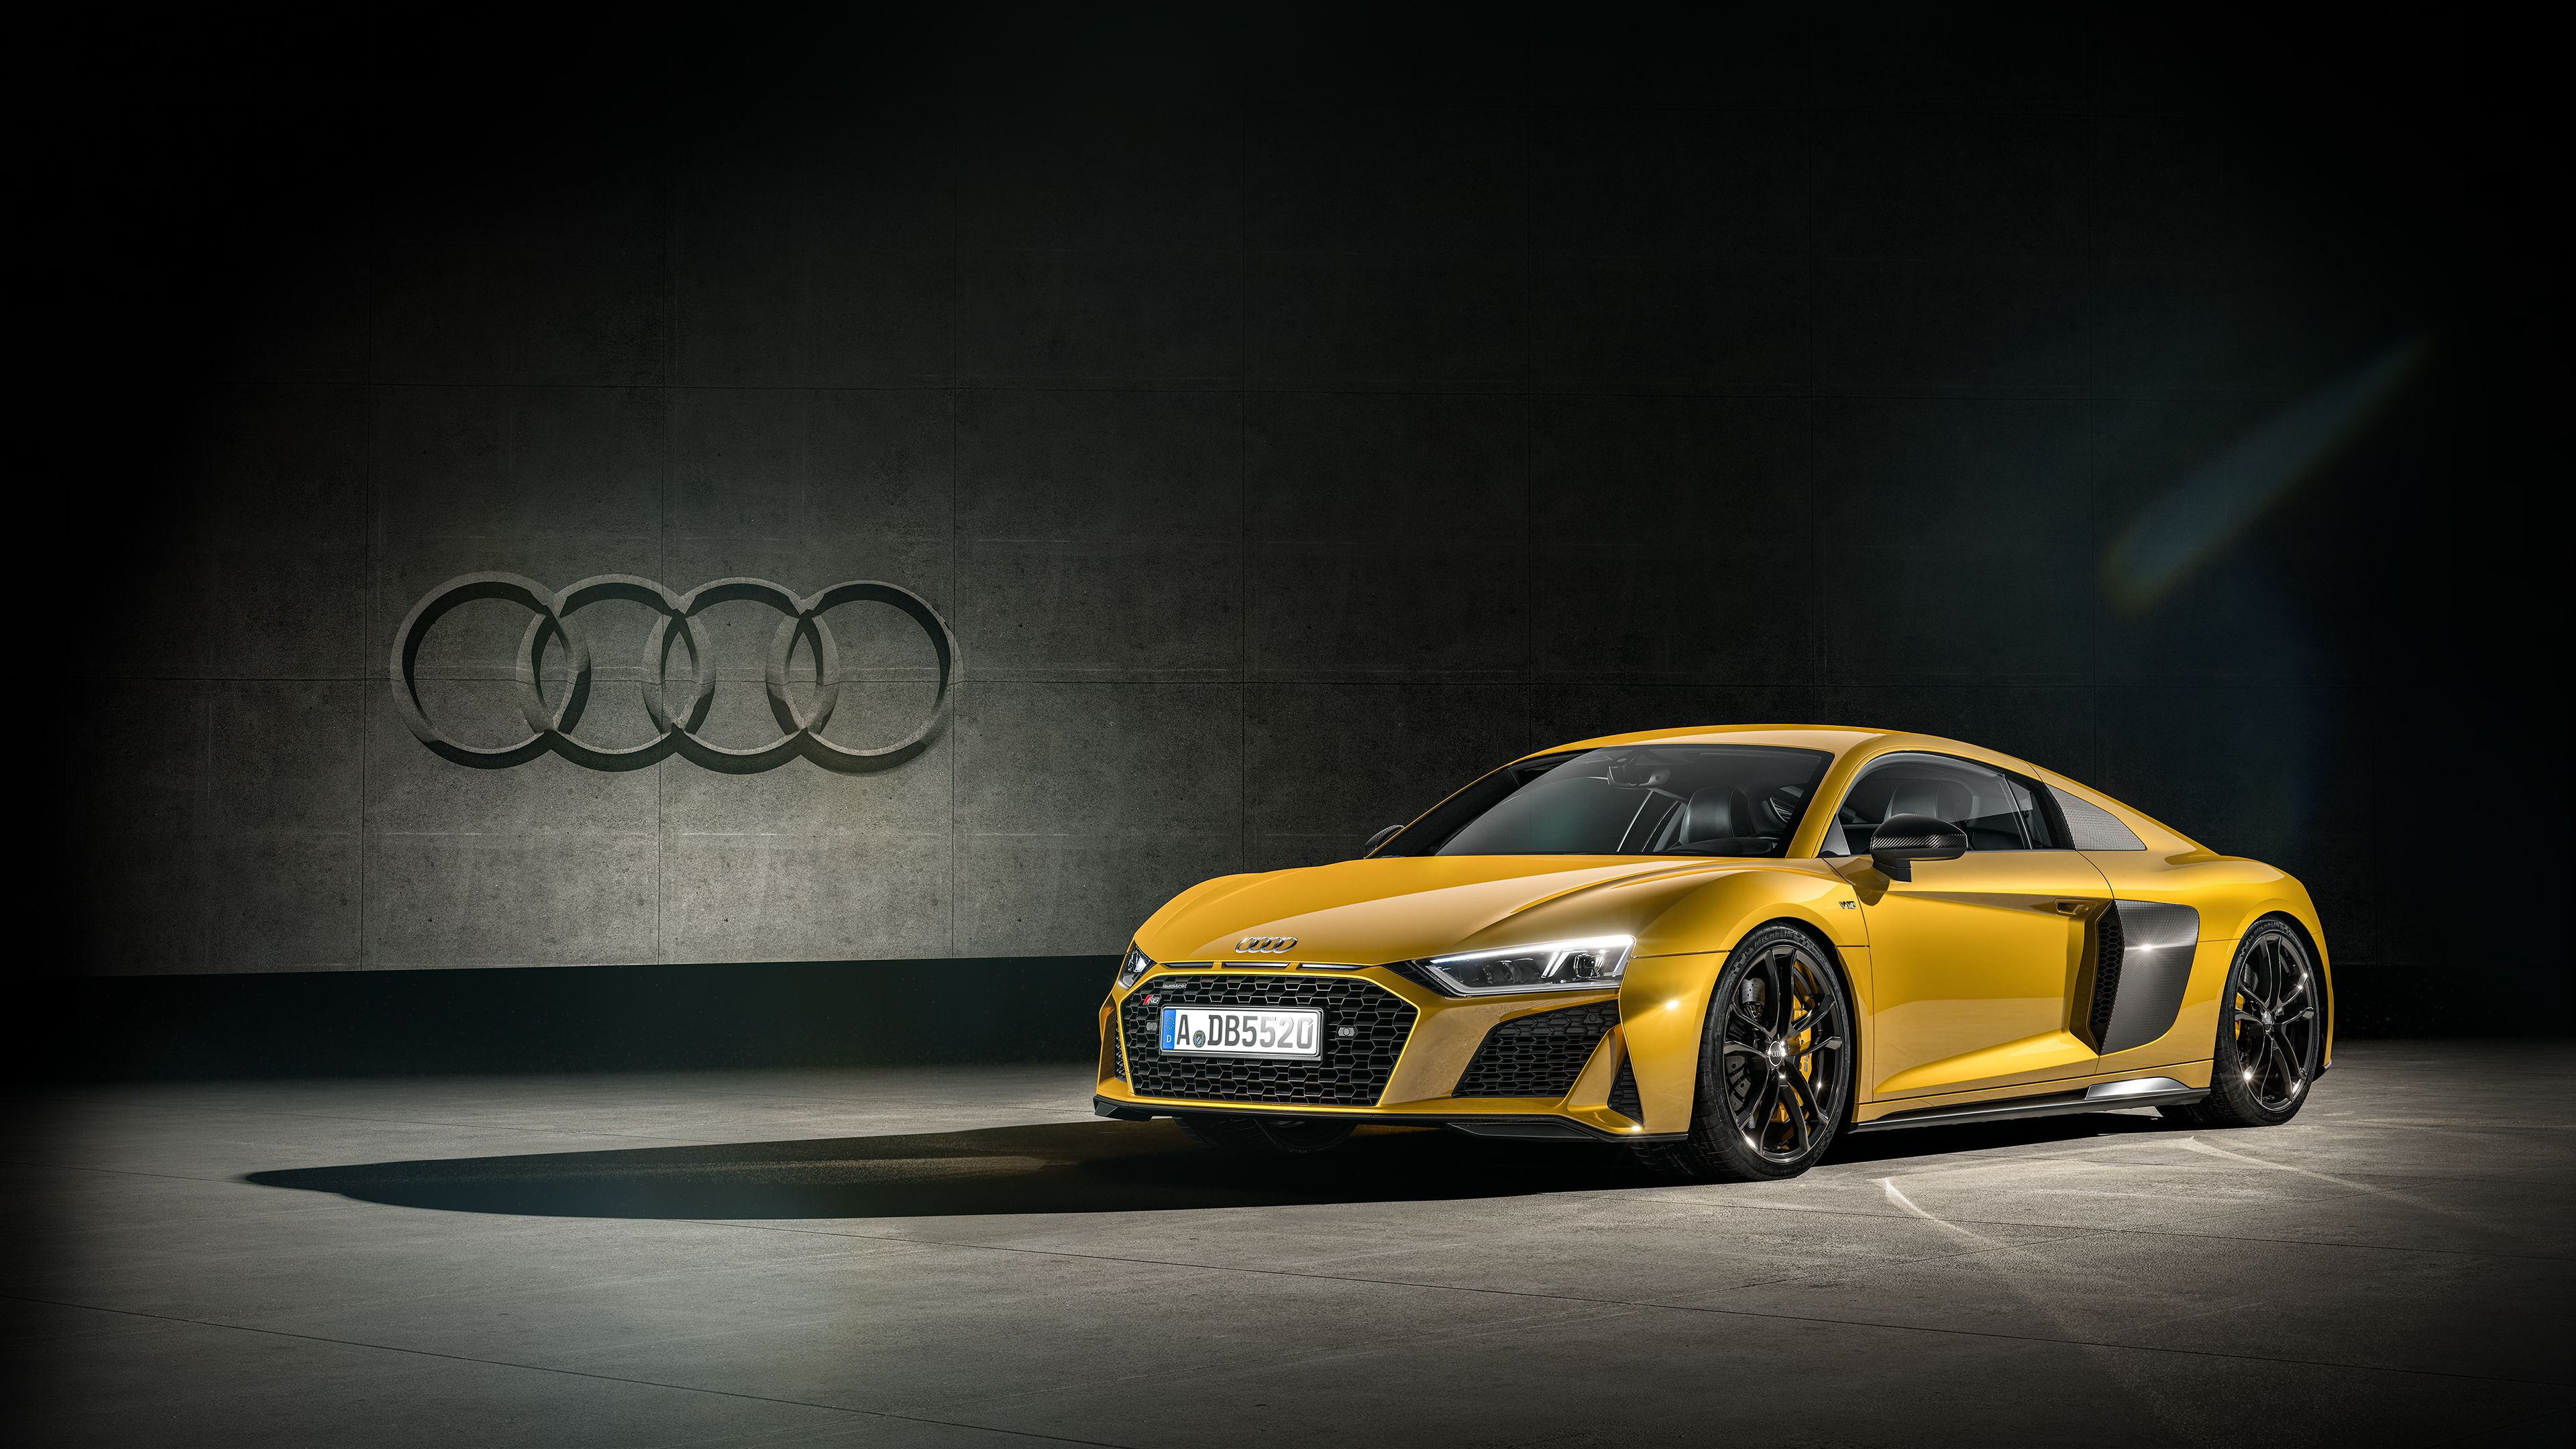 Just browse through our collection of more than 60 hight resolution wallpapers and download. Audi R8 Yellow 4k Audi R8 Yellow 4k Wallpapers Audi Automotive Design Audi R8